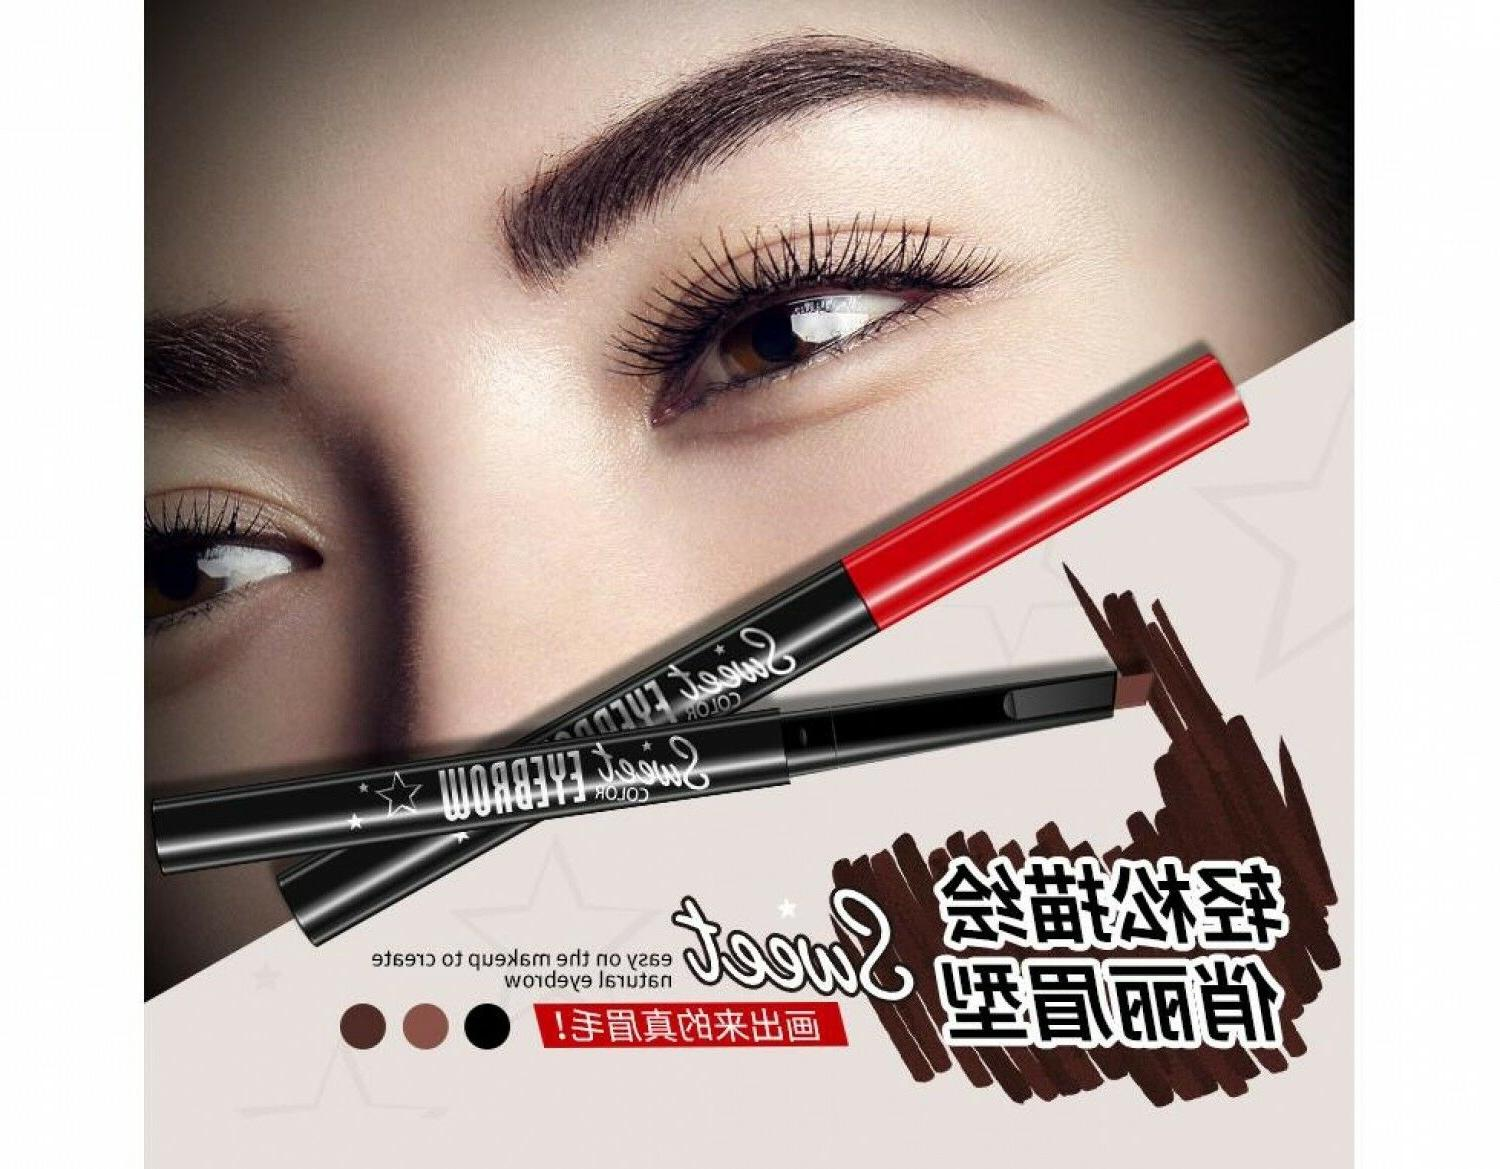 Makeup Automatic Pro Waterproof Pencil Makeup Style